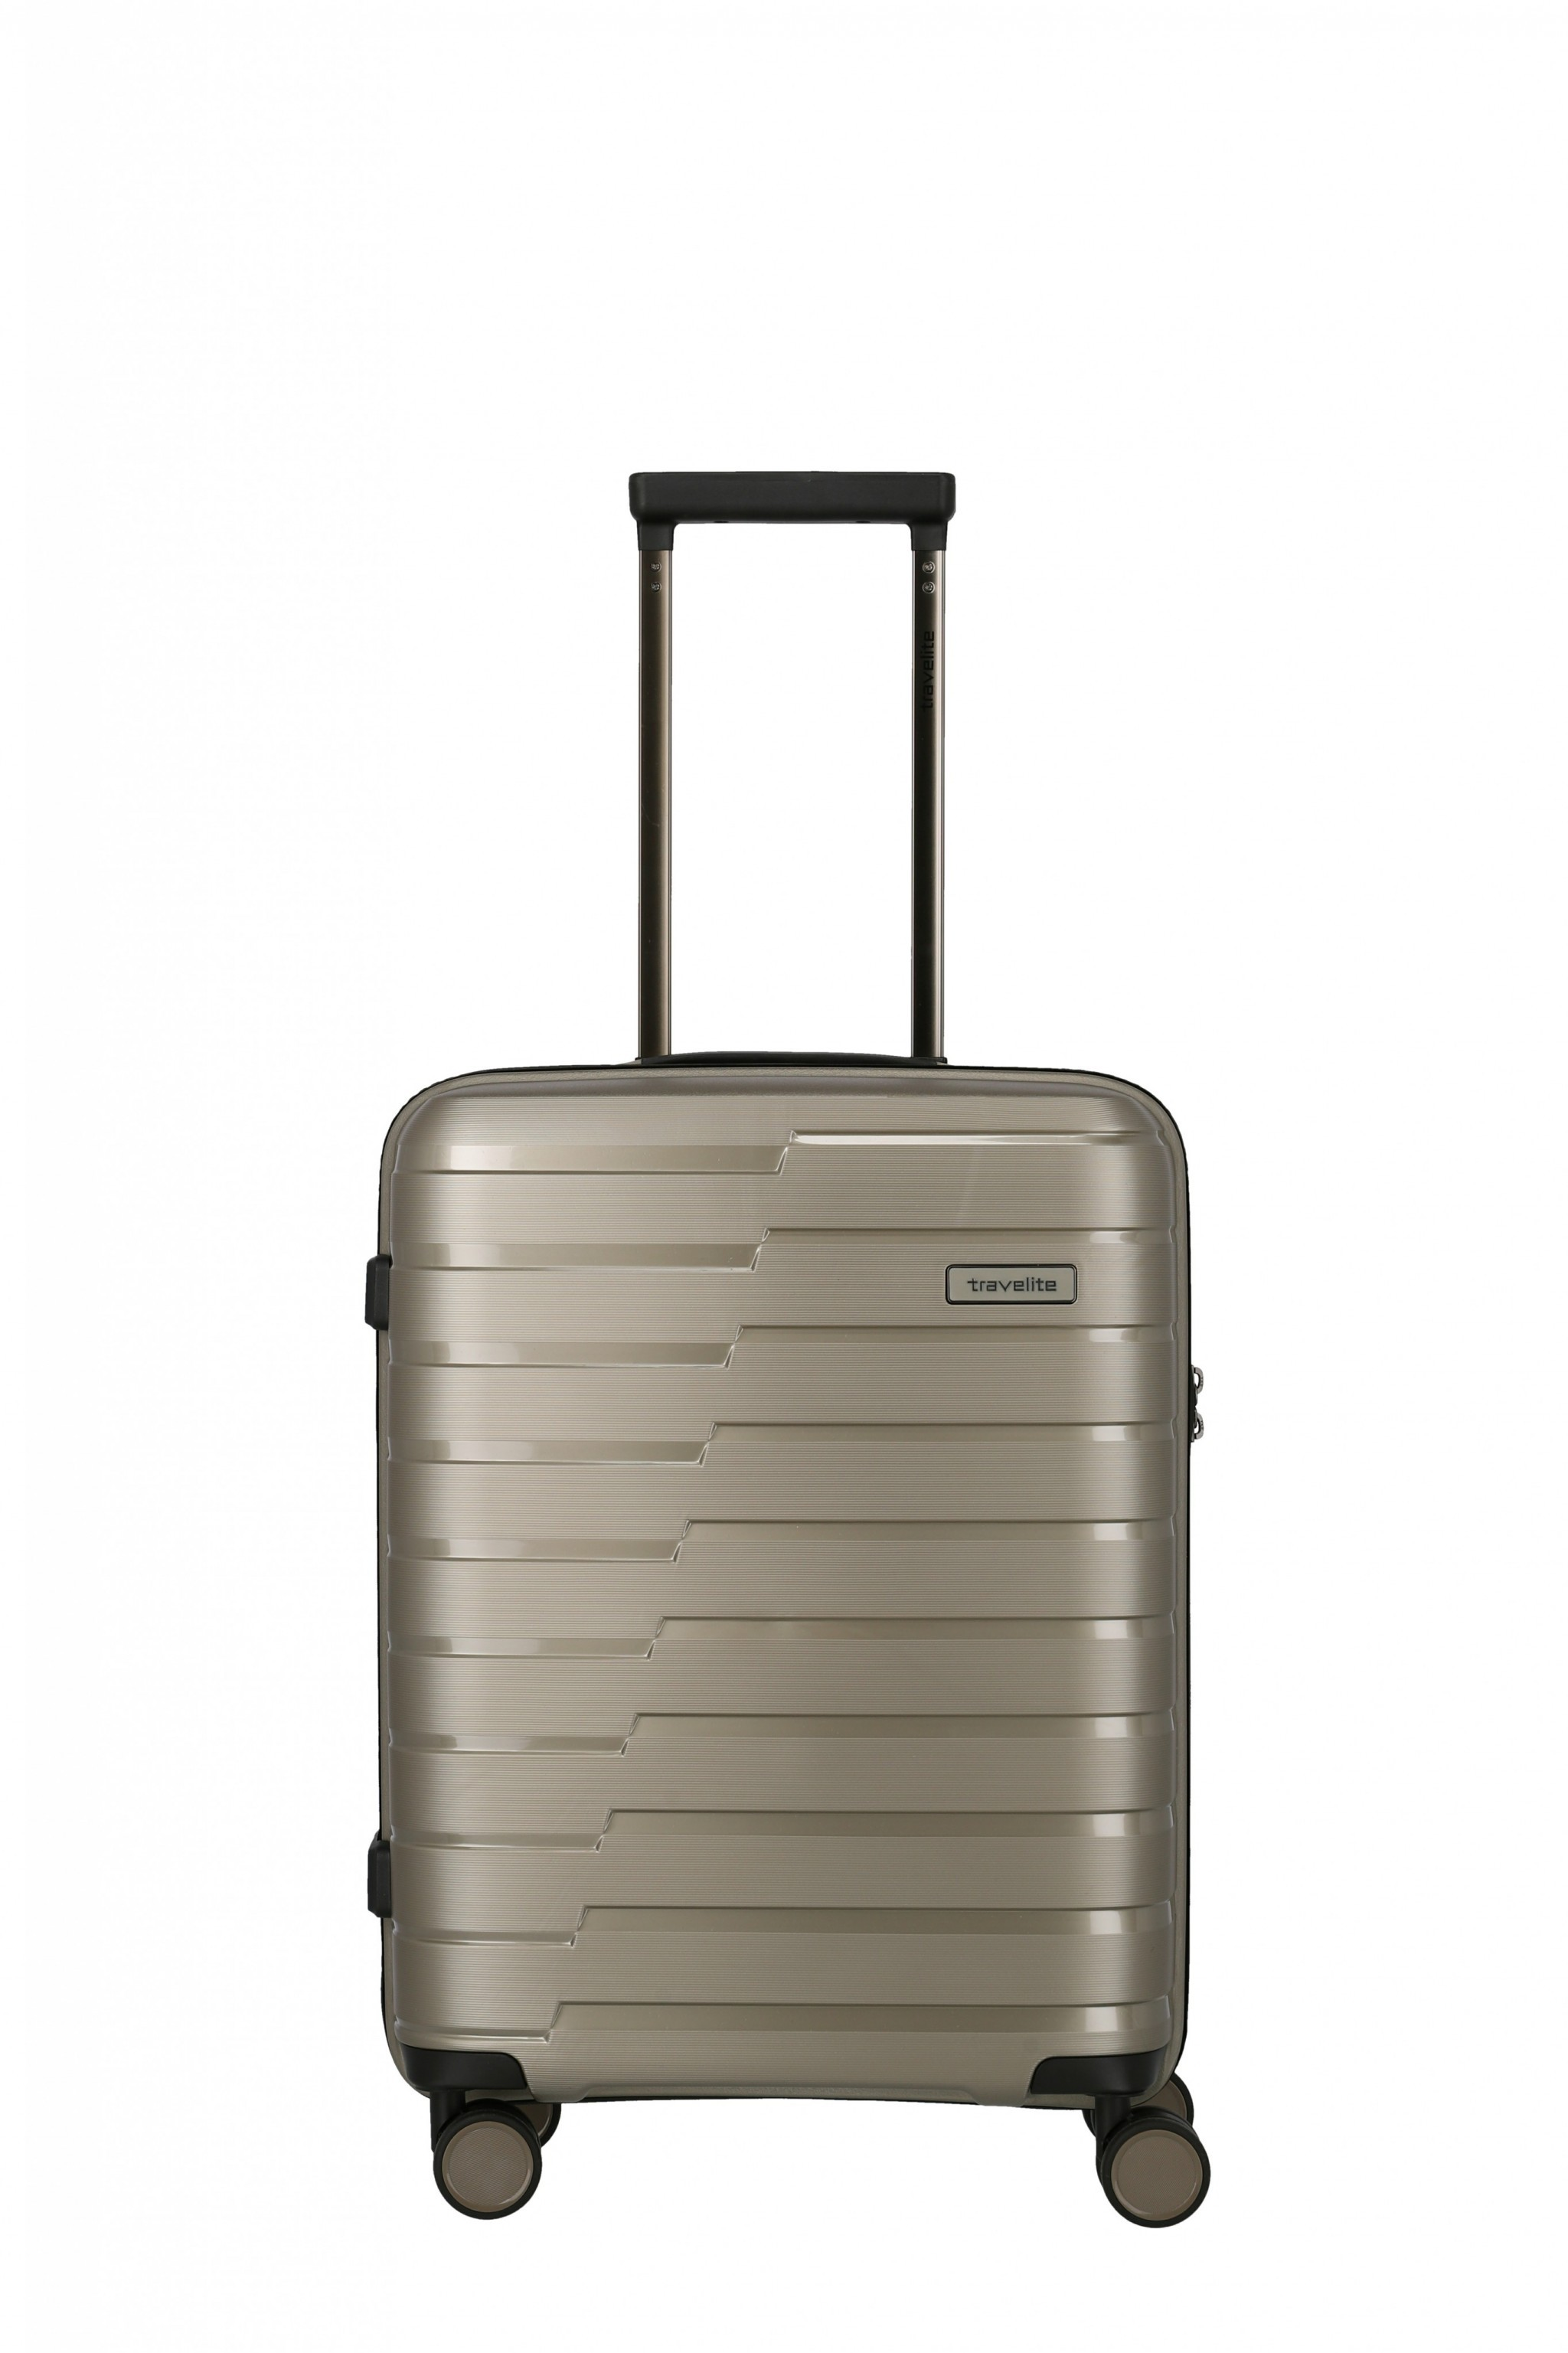 Troler travelite AIR BASE 4 roti DUBLE 55 CM - S